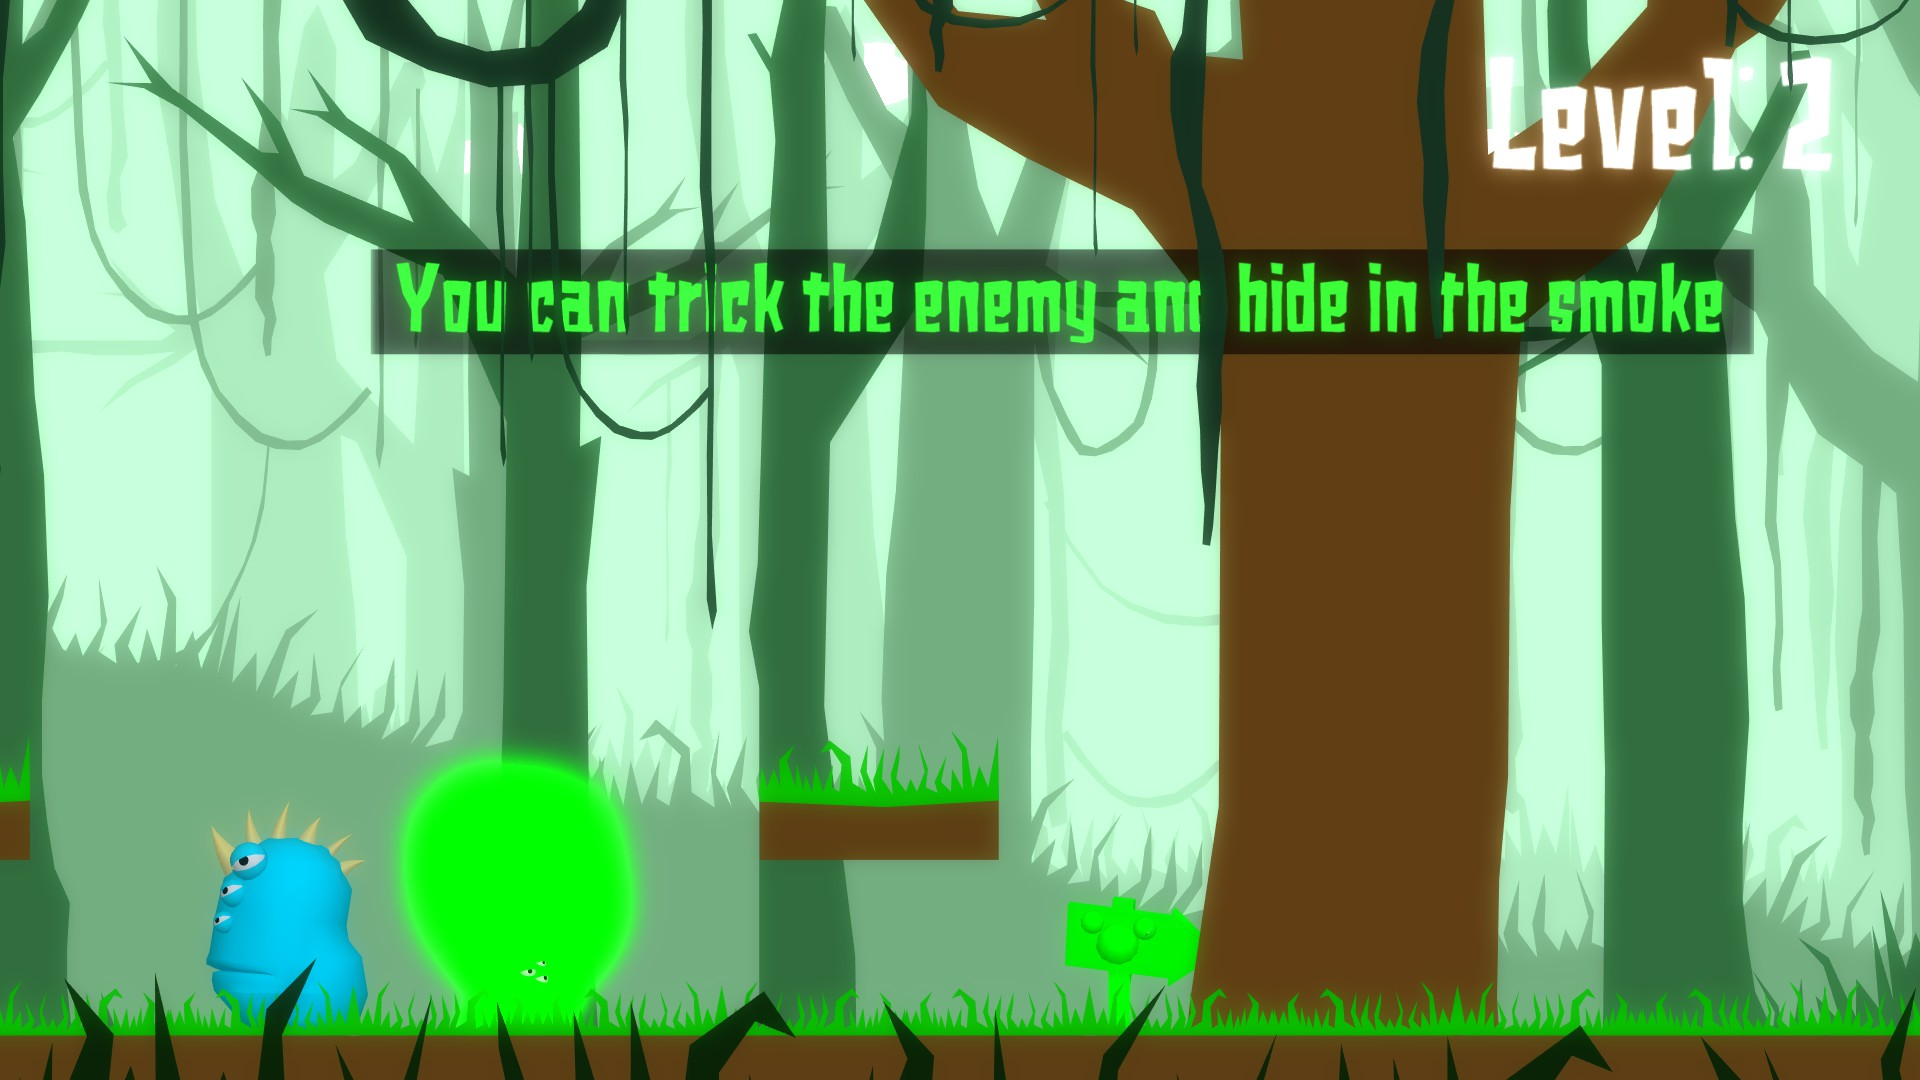 Coated level 2, the main character has become green to perfectly blend into green smoke and do unnoticed by an enemy. Only their 3 eyes are visible. Tutorial text reads: you can trick the enemy and hide in the smoke.